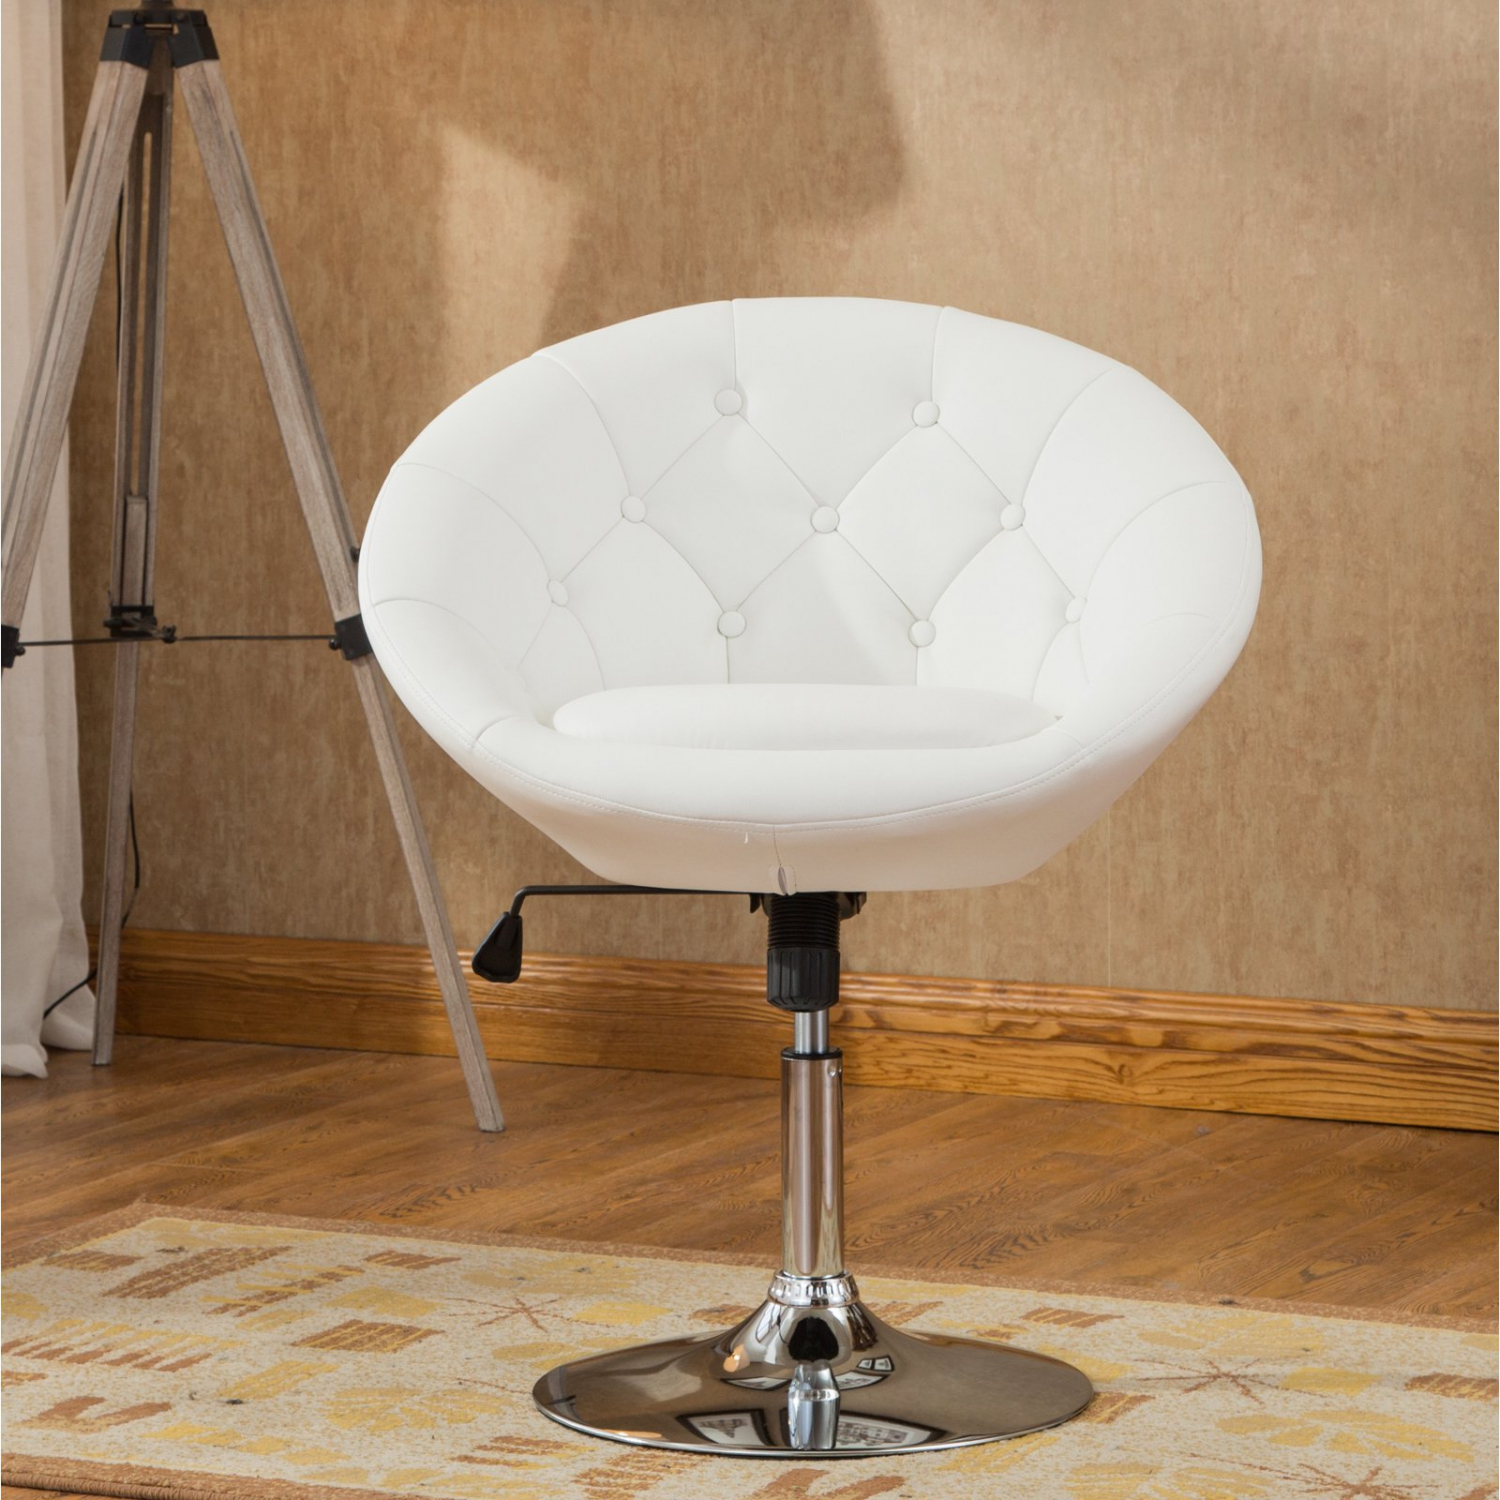 White Pedestal Swivel Chair Faux Leather Accent Height Adjustable Vanity Stool 612524903066 Ebay